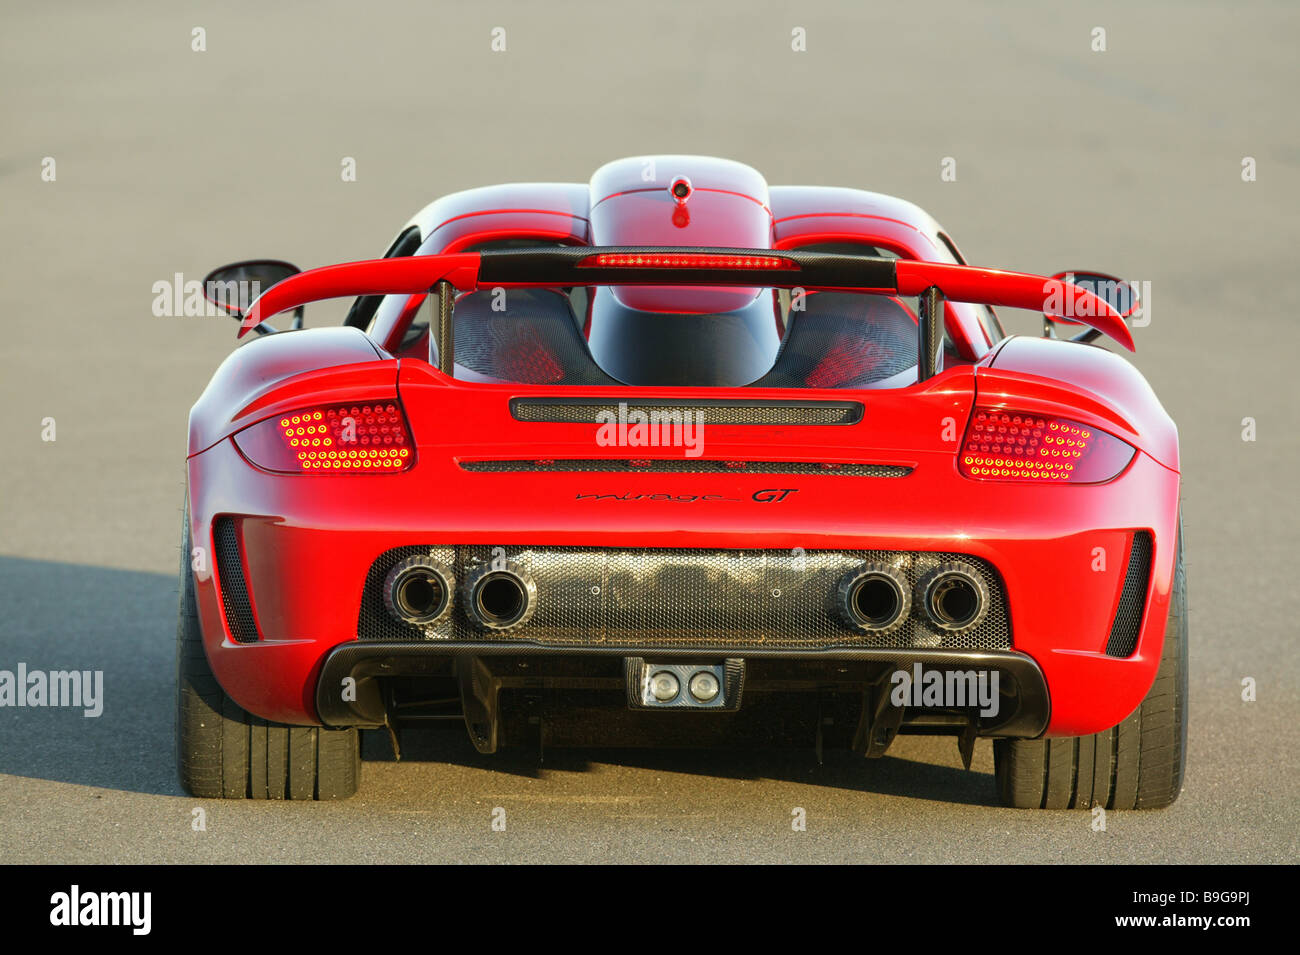 Porsche Gemballa Mirage Red Backview Series Vehicle Car Sport Cars